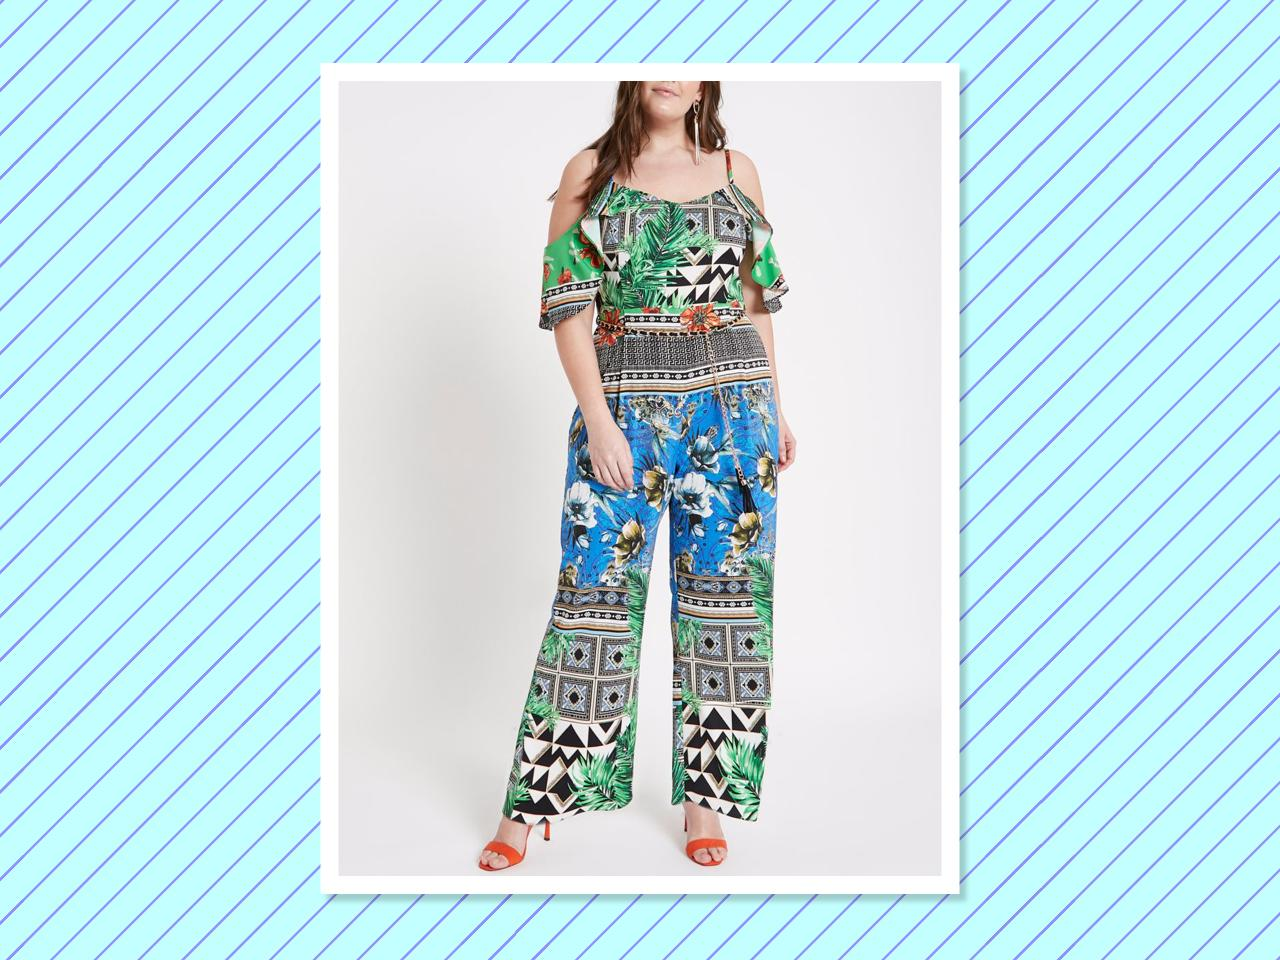 "<p>Plus Green Scarf Print Bardot Jumpsuit, $150, <a rel=""nofollow"" href=""https://us.riverisland.com/p/plus-green-scarf-print-bardot-jumpsuit-716462"">riverisland.com </a> </p>"